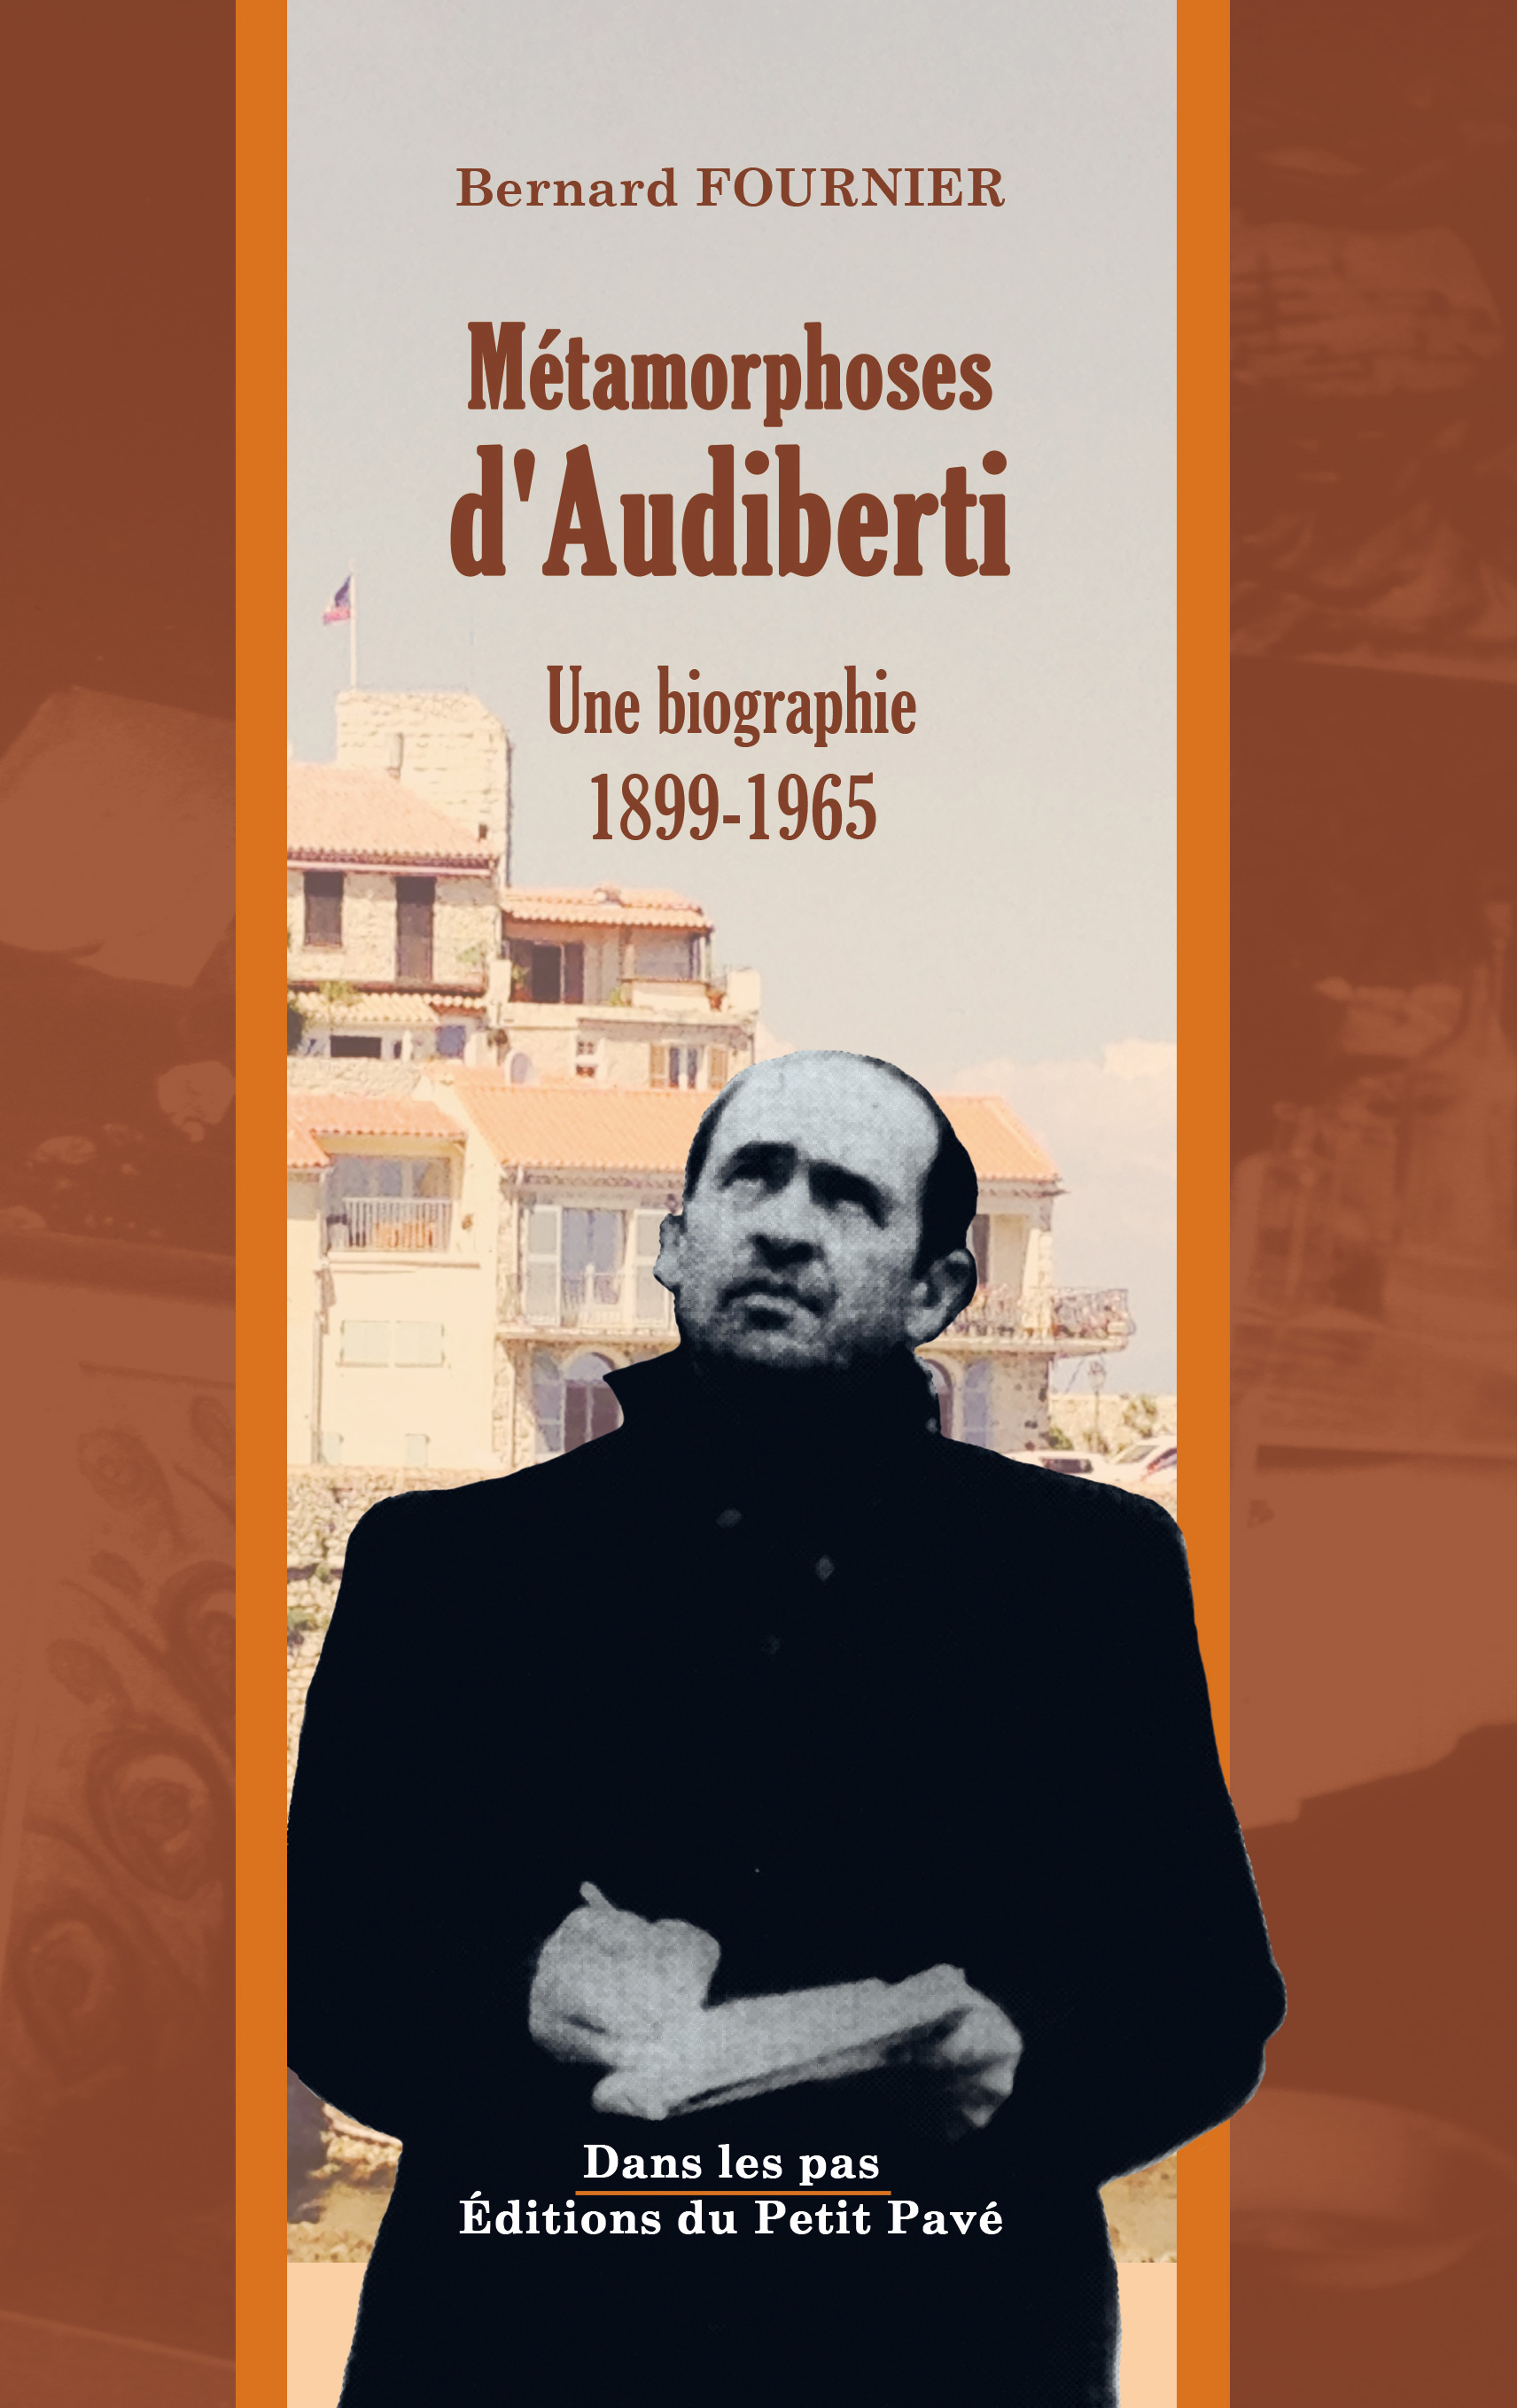 Métamorphoses d'Audiberti - Photo couv-audiberti-2.jpg